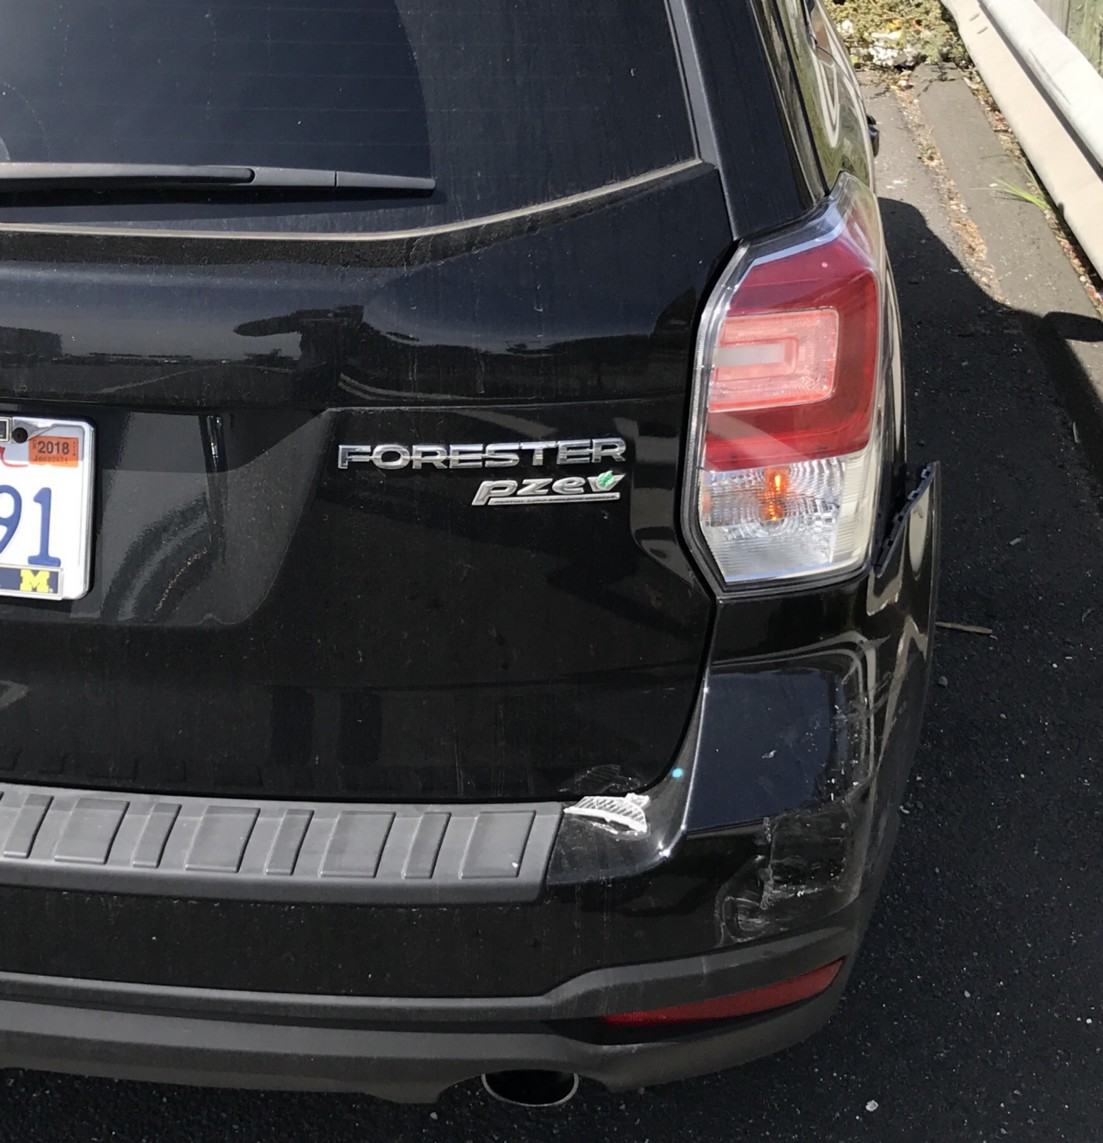 Week 36 5 — The Car Accident - Don Woods - Medium